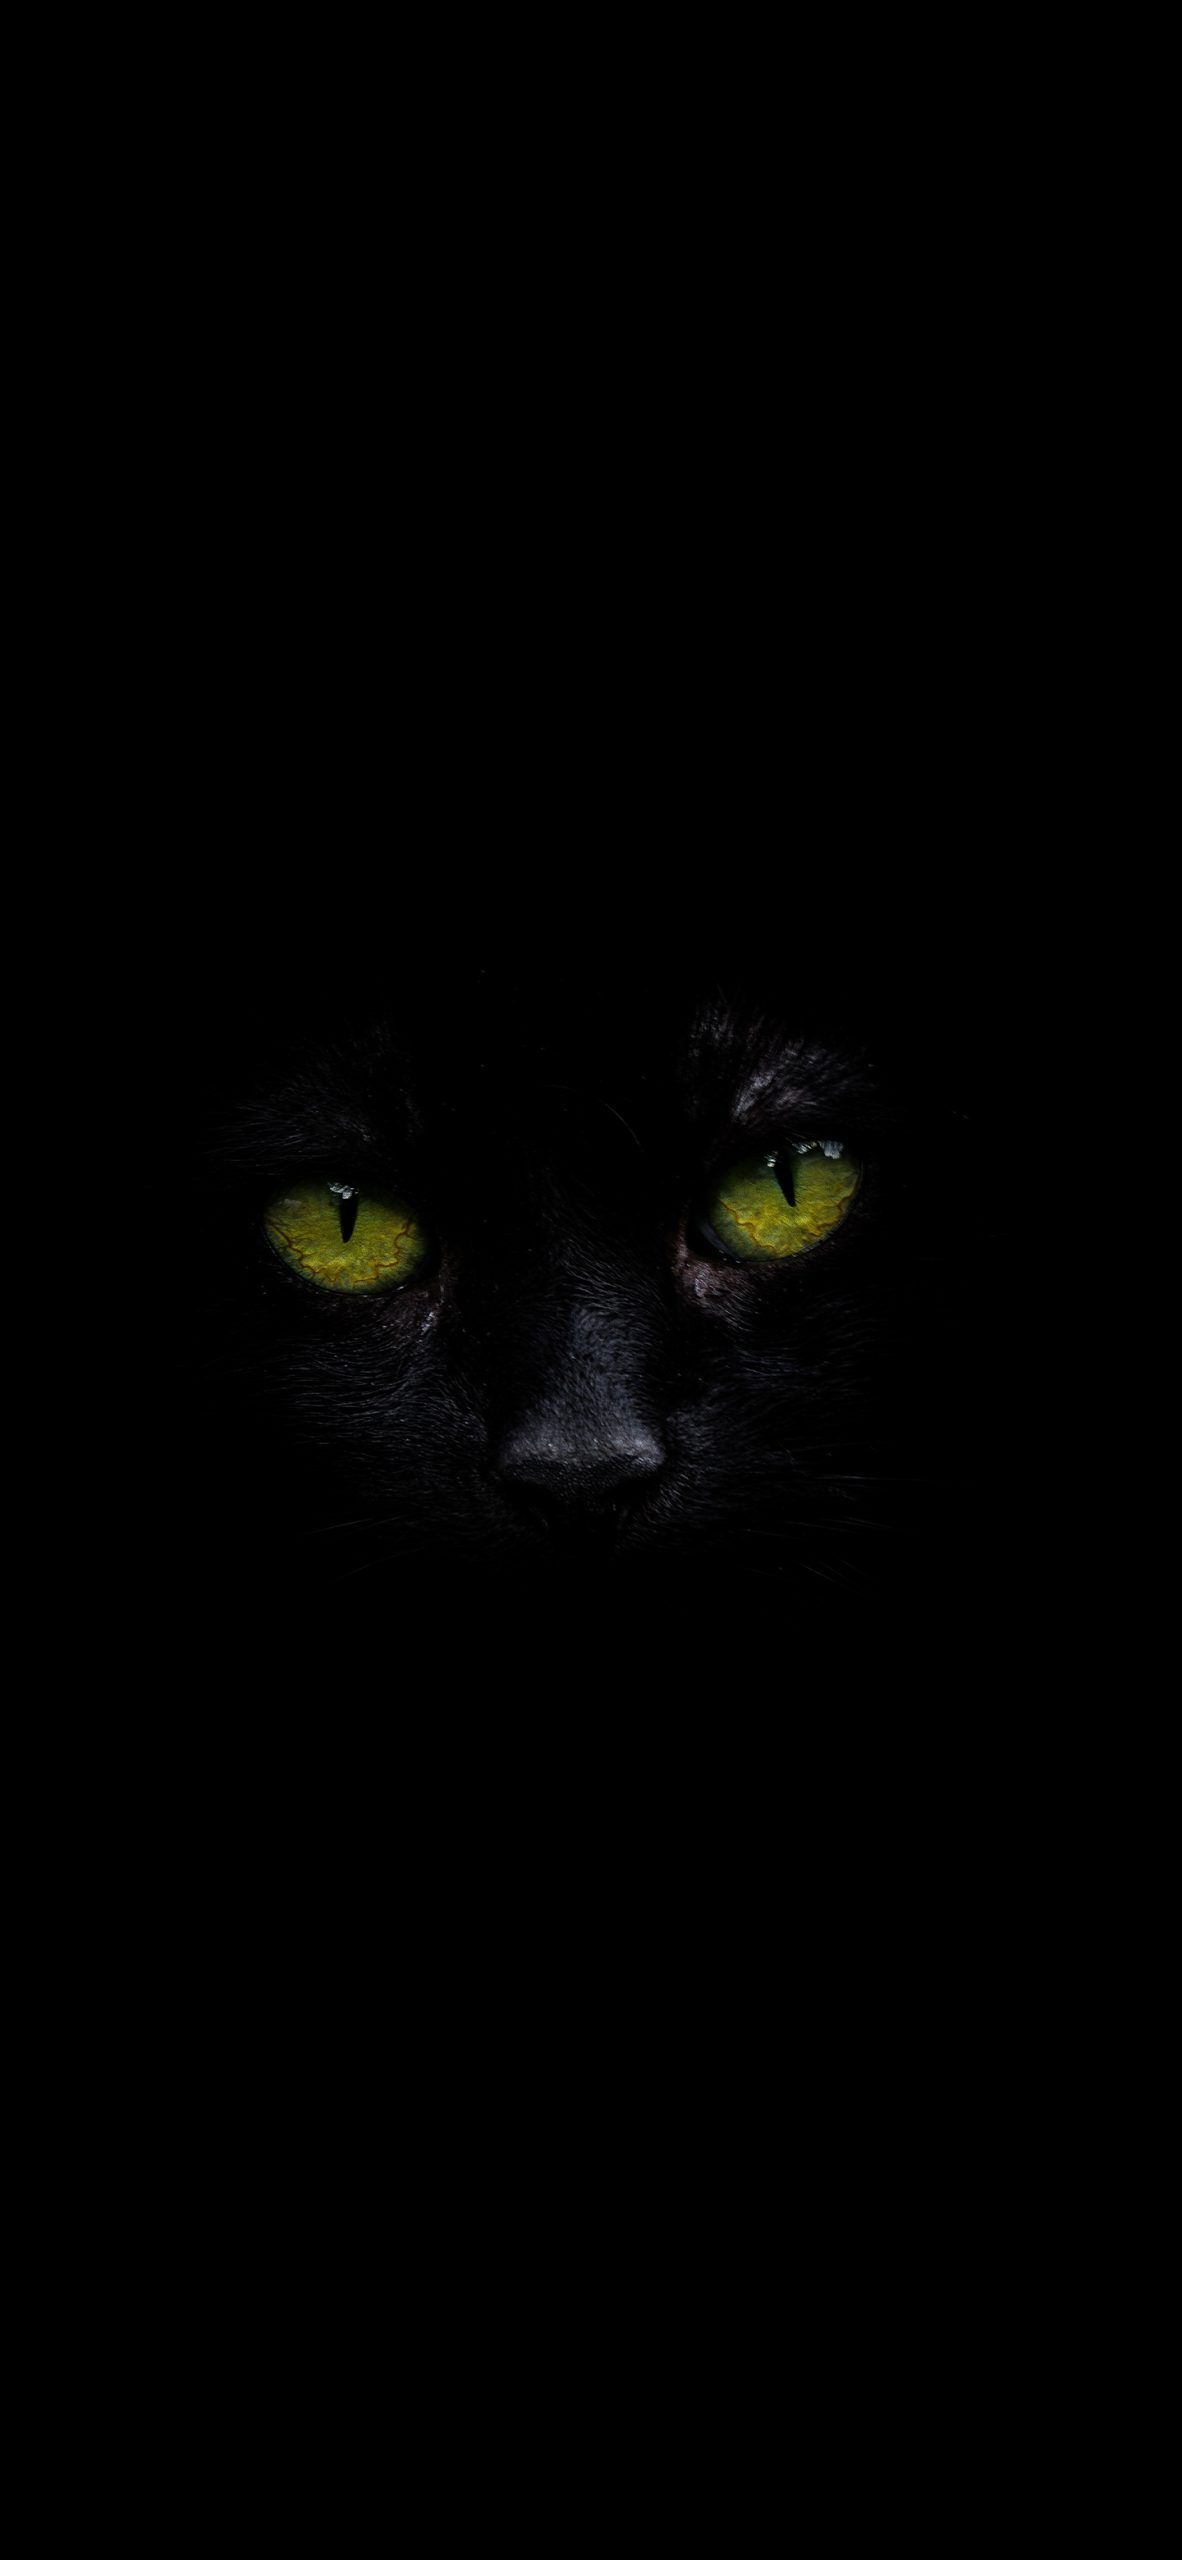 Black Cat With Green Eyes Amoled Wallpaper Amoled In Eyes Wallpaper Green Eyes Animal Tattoos